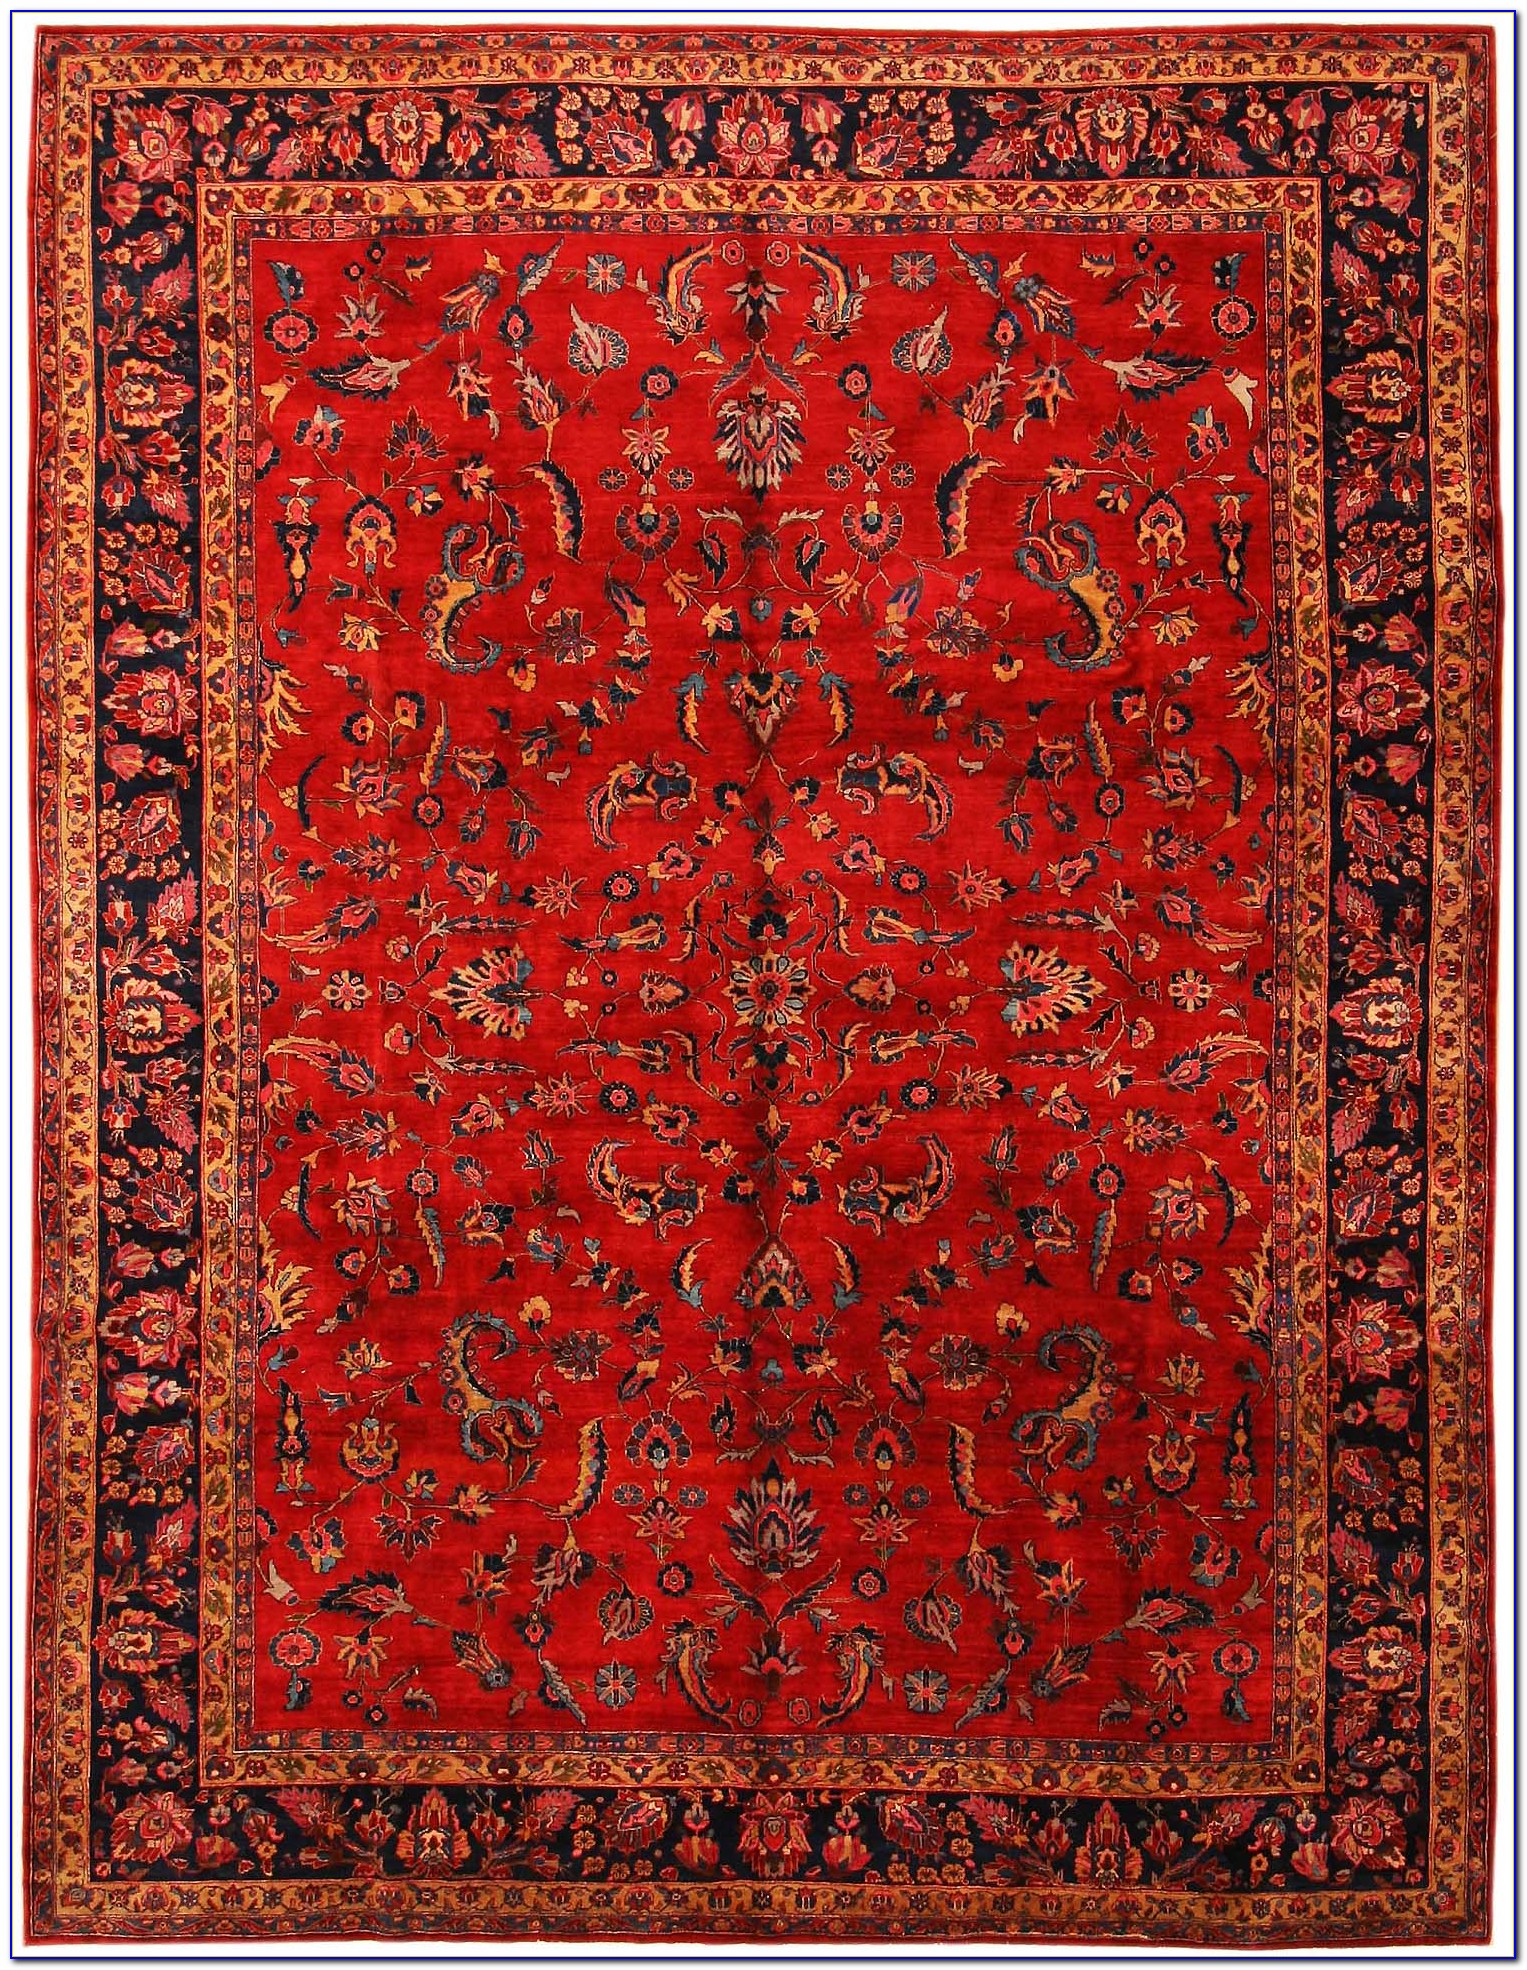 Vintage Moroccan Rugs Los Angeles Rugs Home Design Ideas Ord558wdmx62455